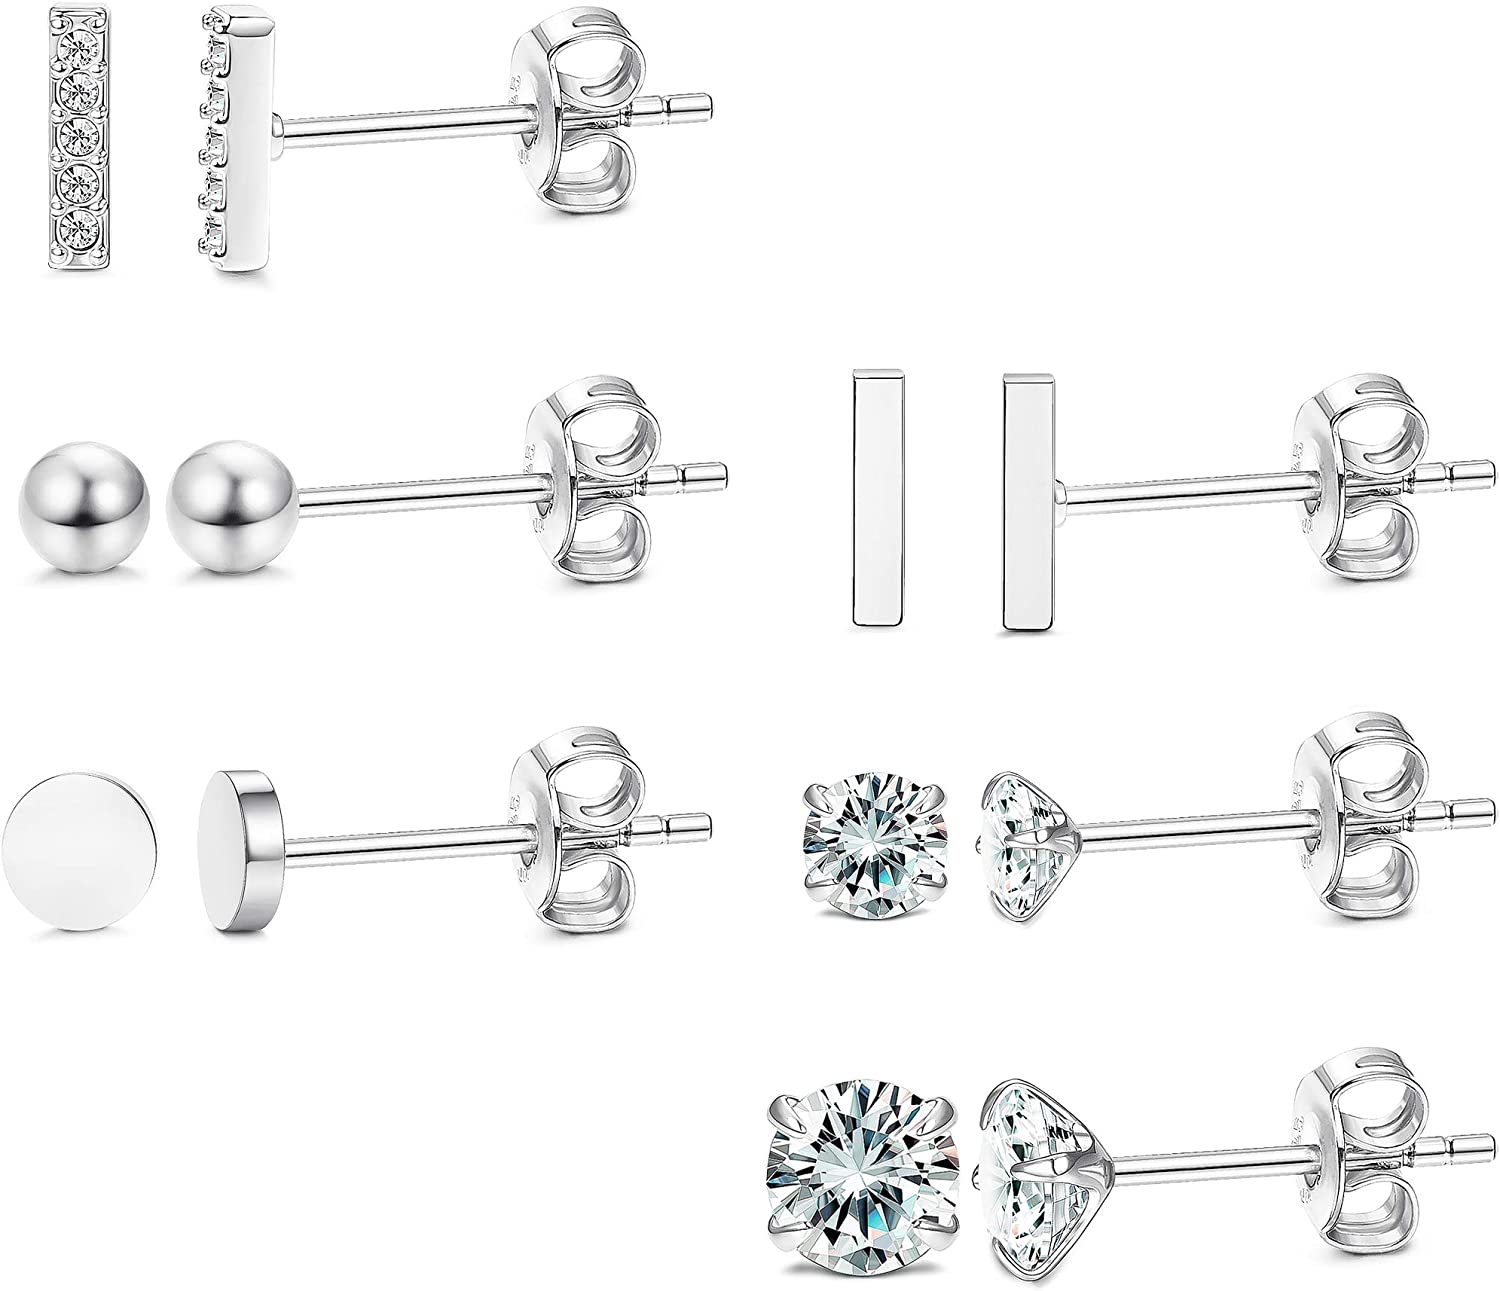 LOYALLOOK 6 Pairs 925 Sterling Silver Bar Stud Earrings Set Cubic Zirconia Tiny Ball Earrings for Men Women Simple Chic Earrings Set